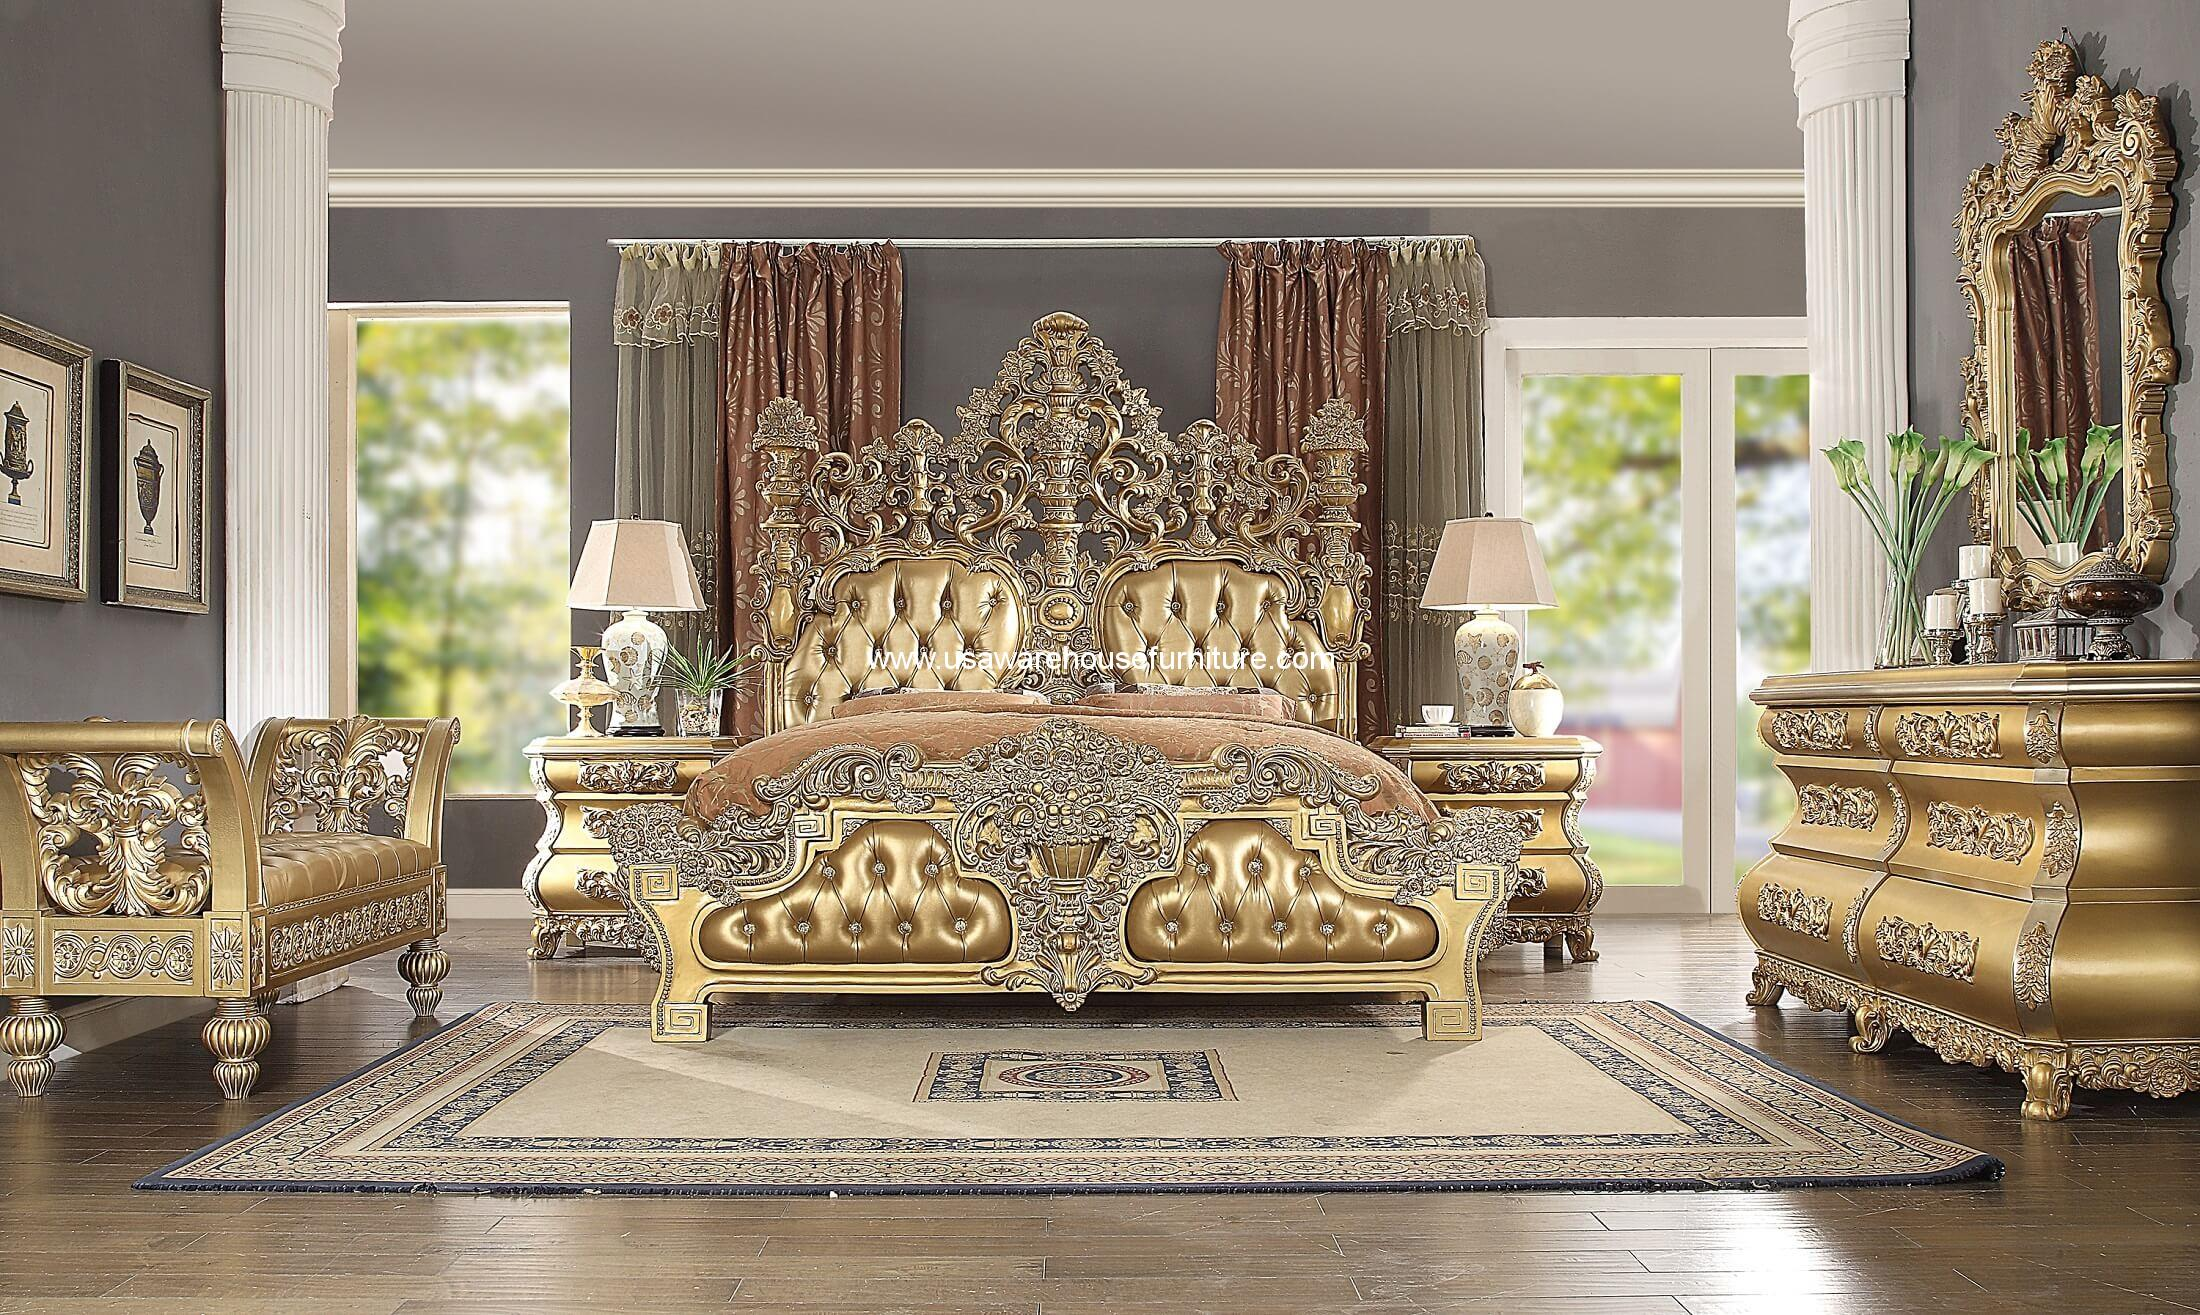 5 Piece HD-8016 Bellagio Bedroom Set Antique Gold Finish